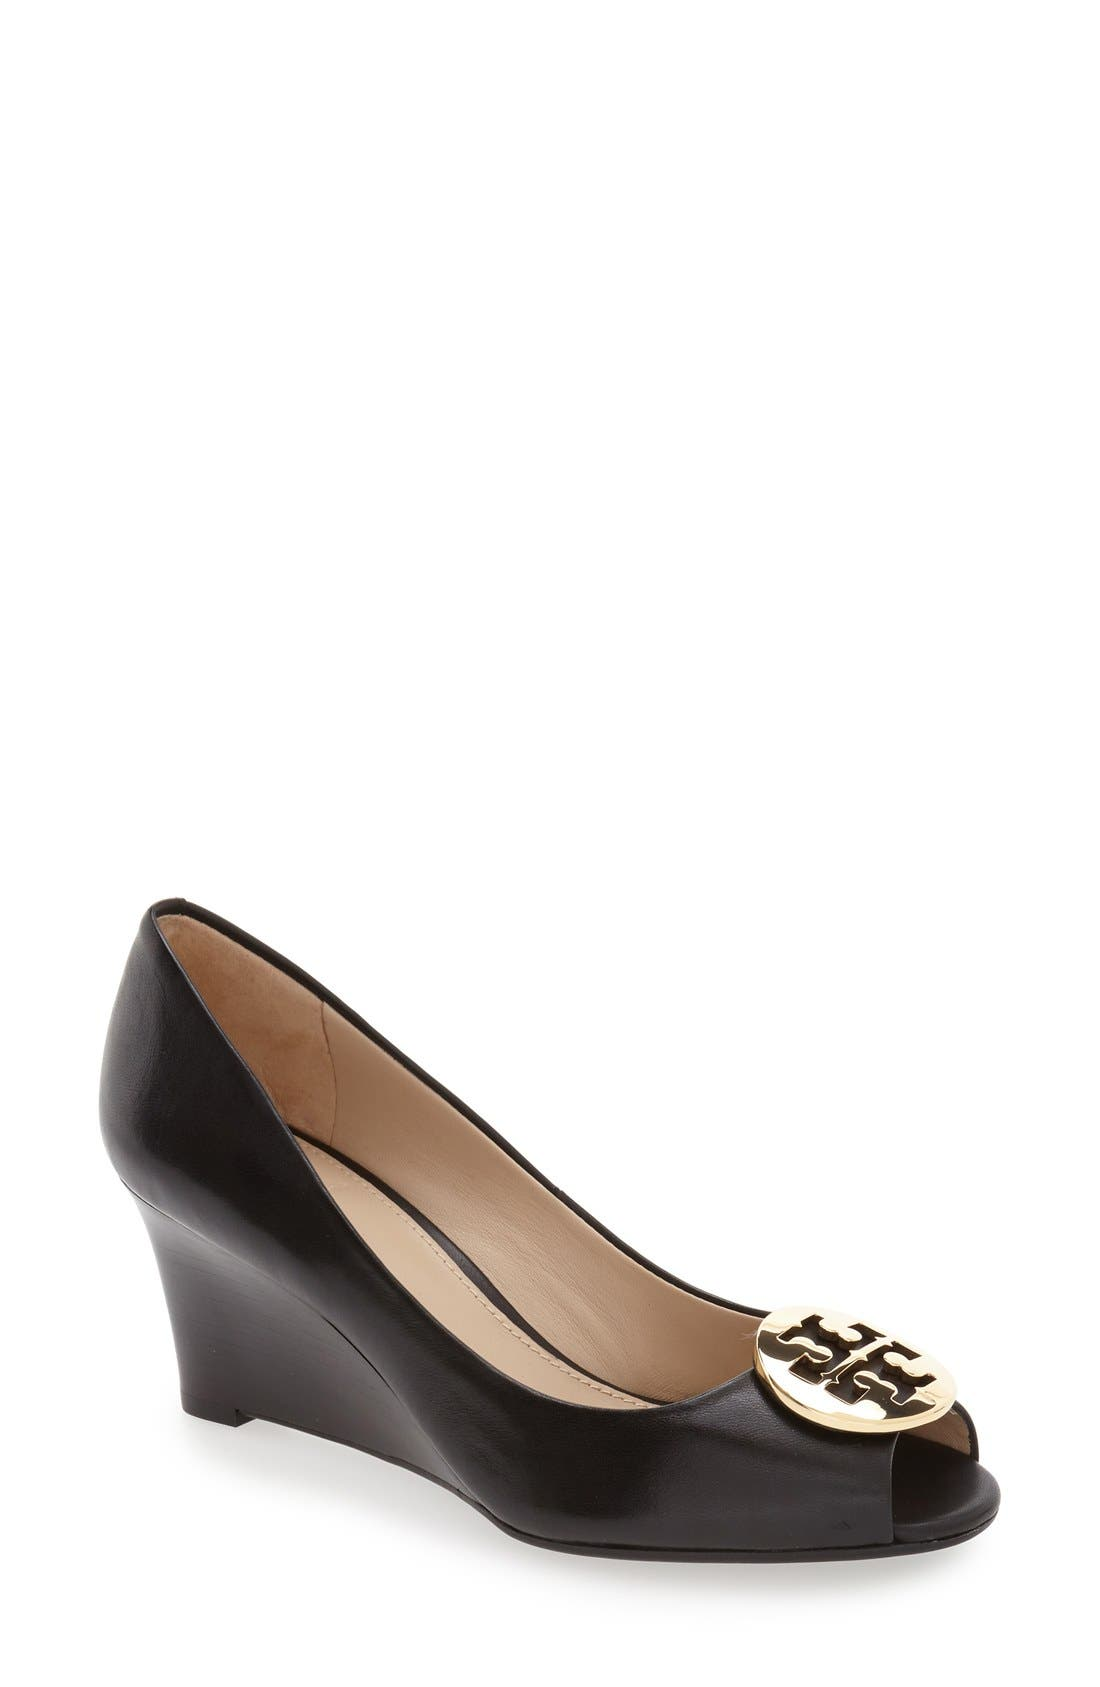 Tory Burch 'Kara' Wedge Pump (Women)